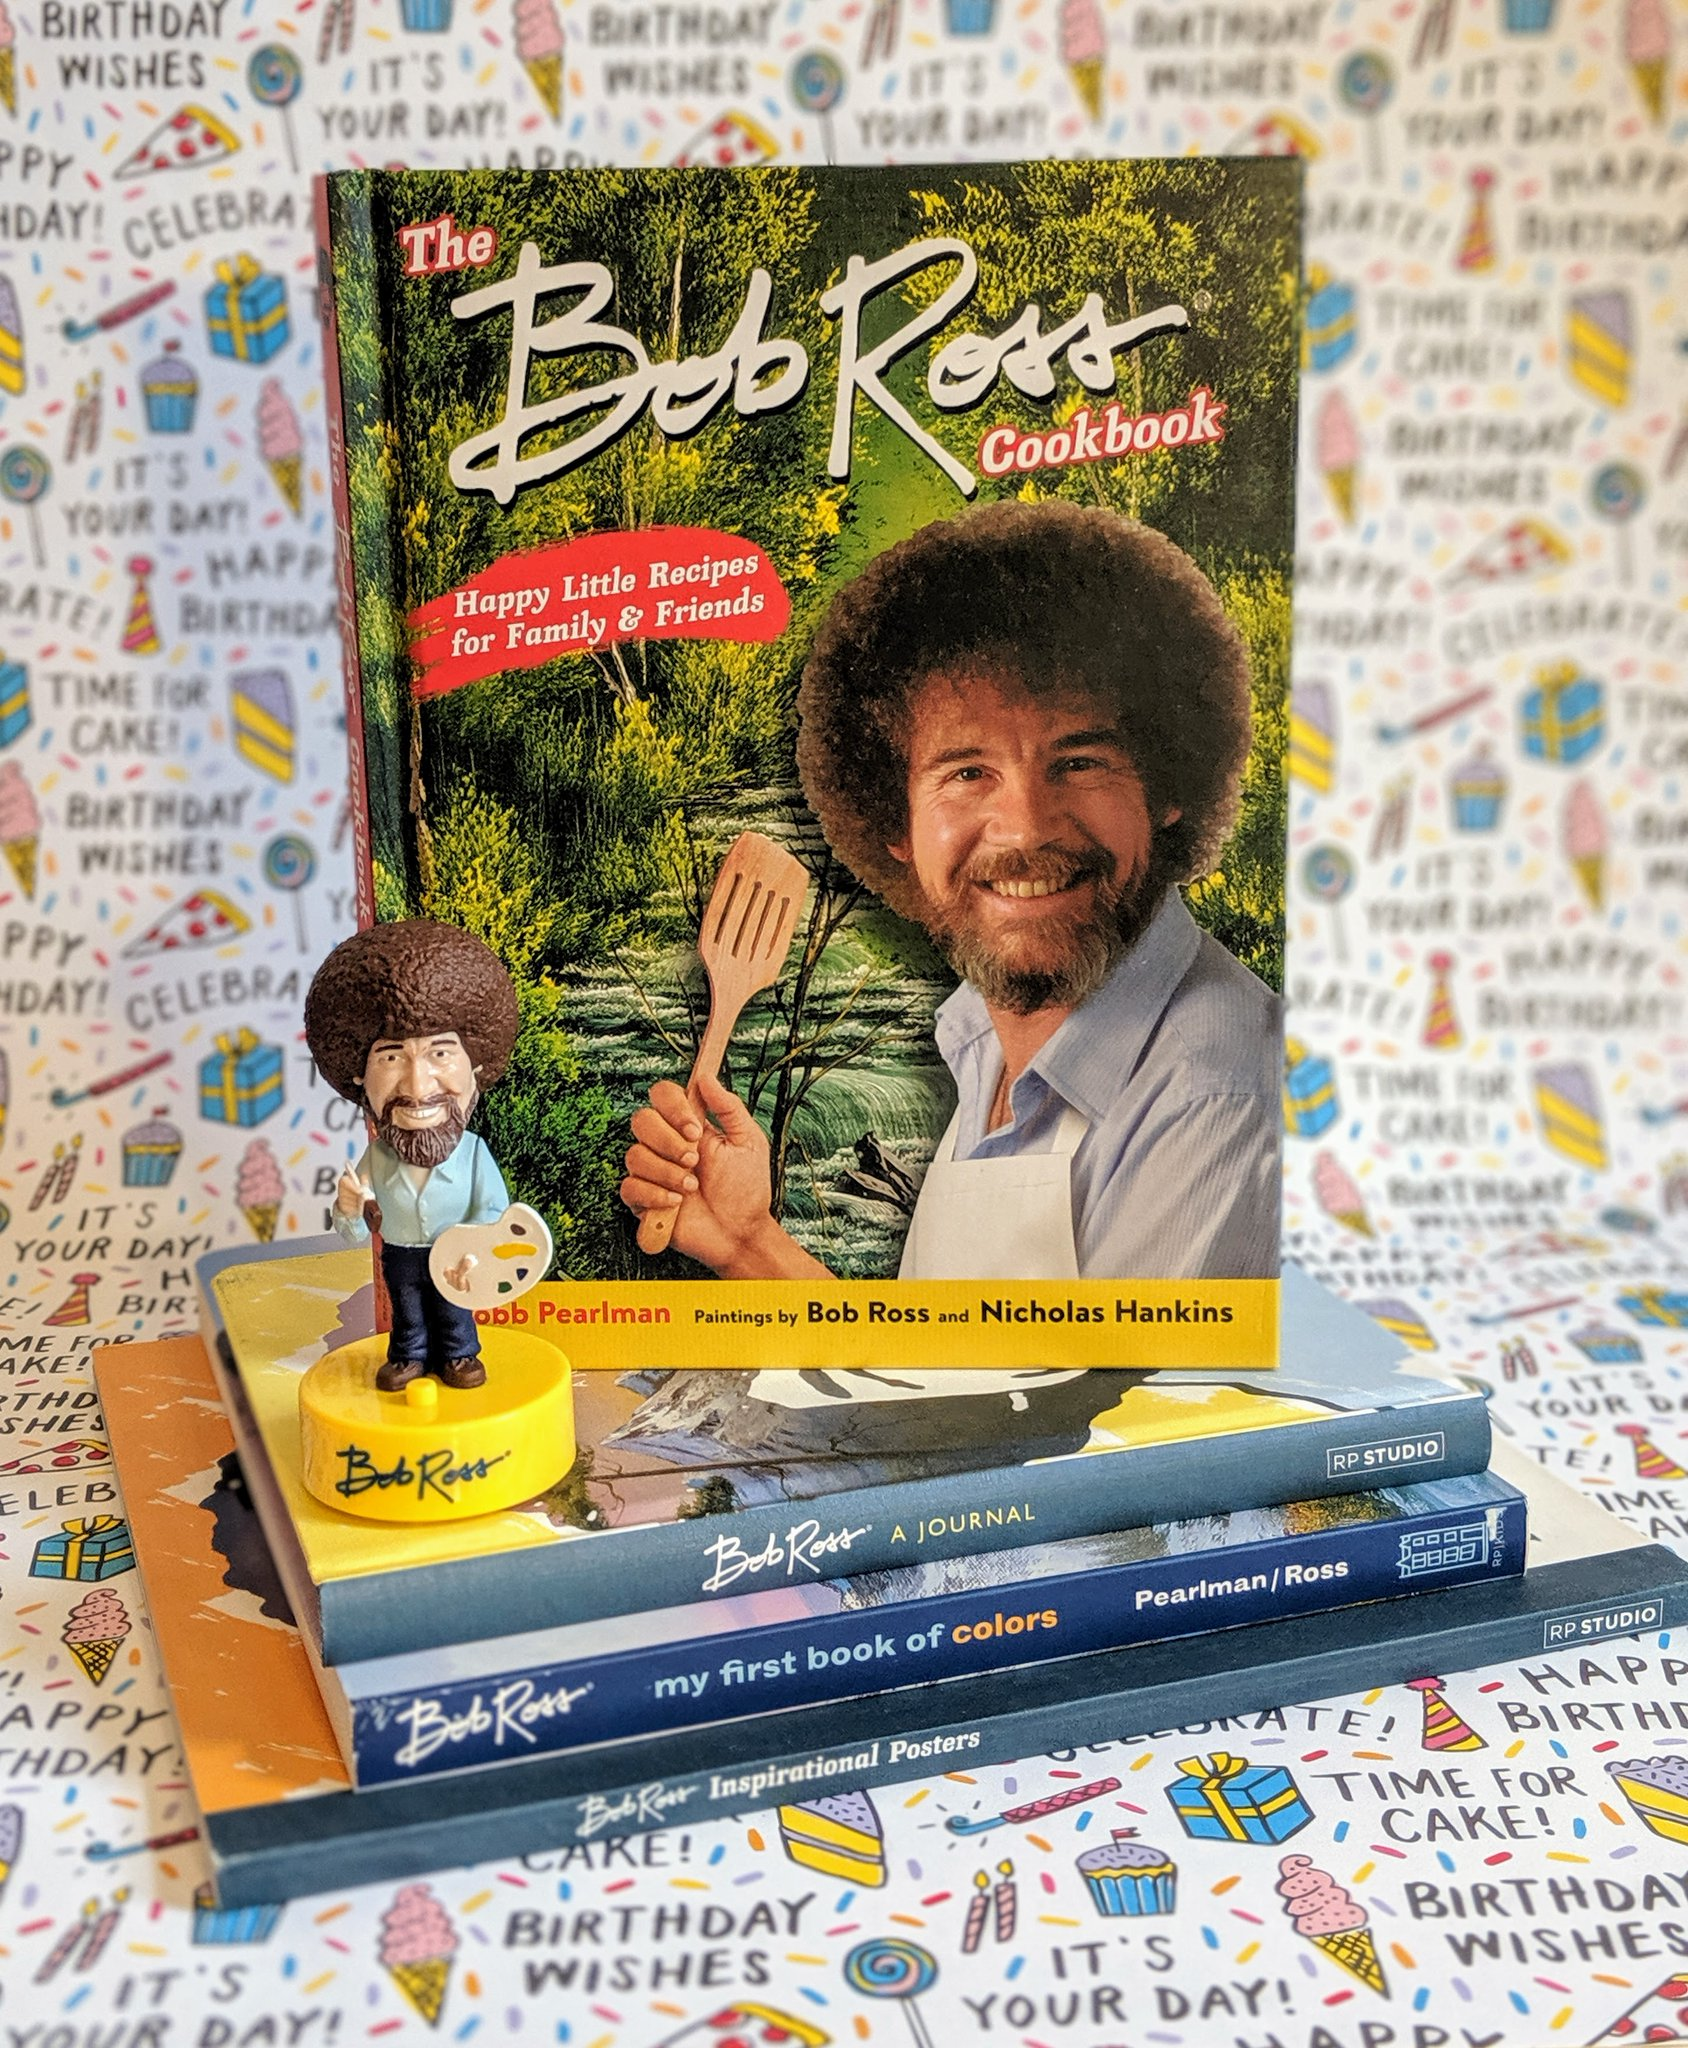 Bob Ross Official On Twitter Happy Book Birthday To The New Bob Ross Cookbook By Robb Pearlman Msmazeppa And Illustrated By Nichankins The Joy Of Bob Ross Meets The Comfort Of Your